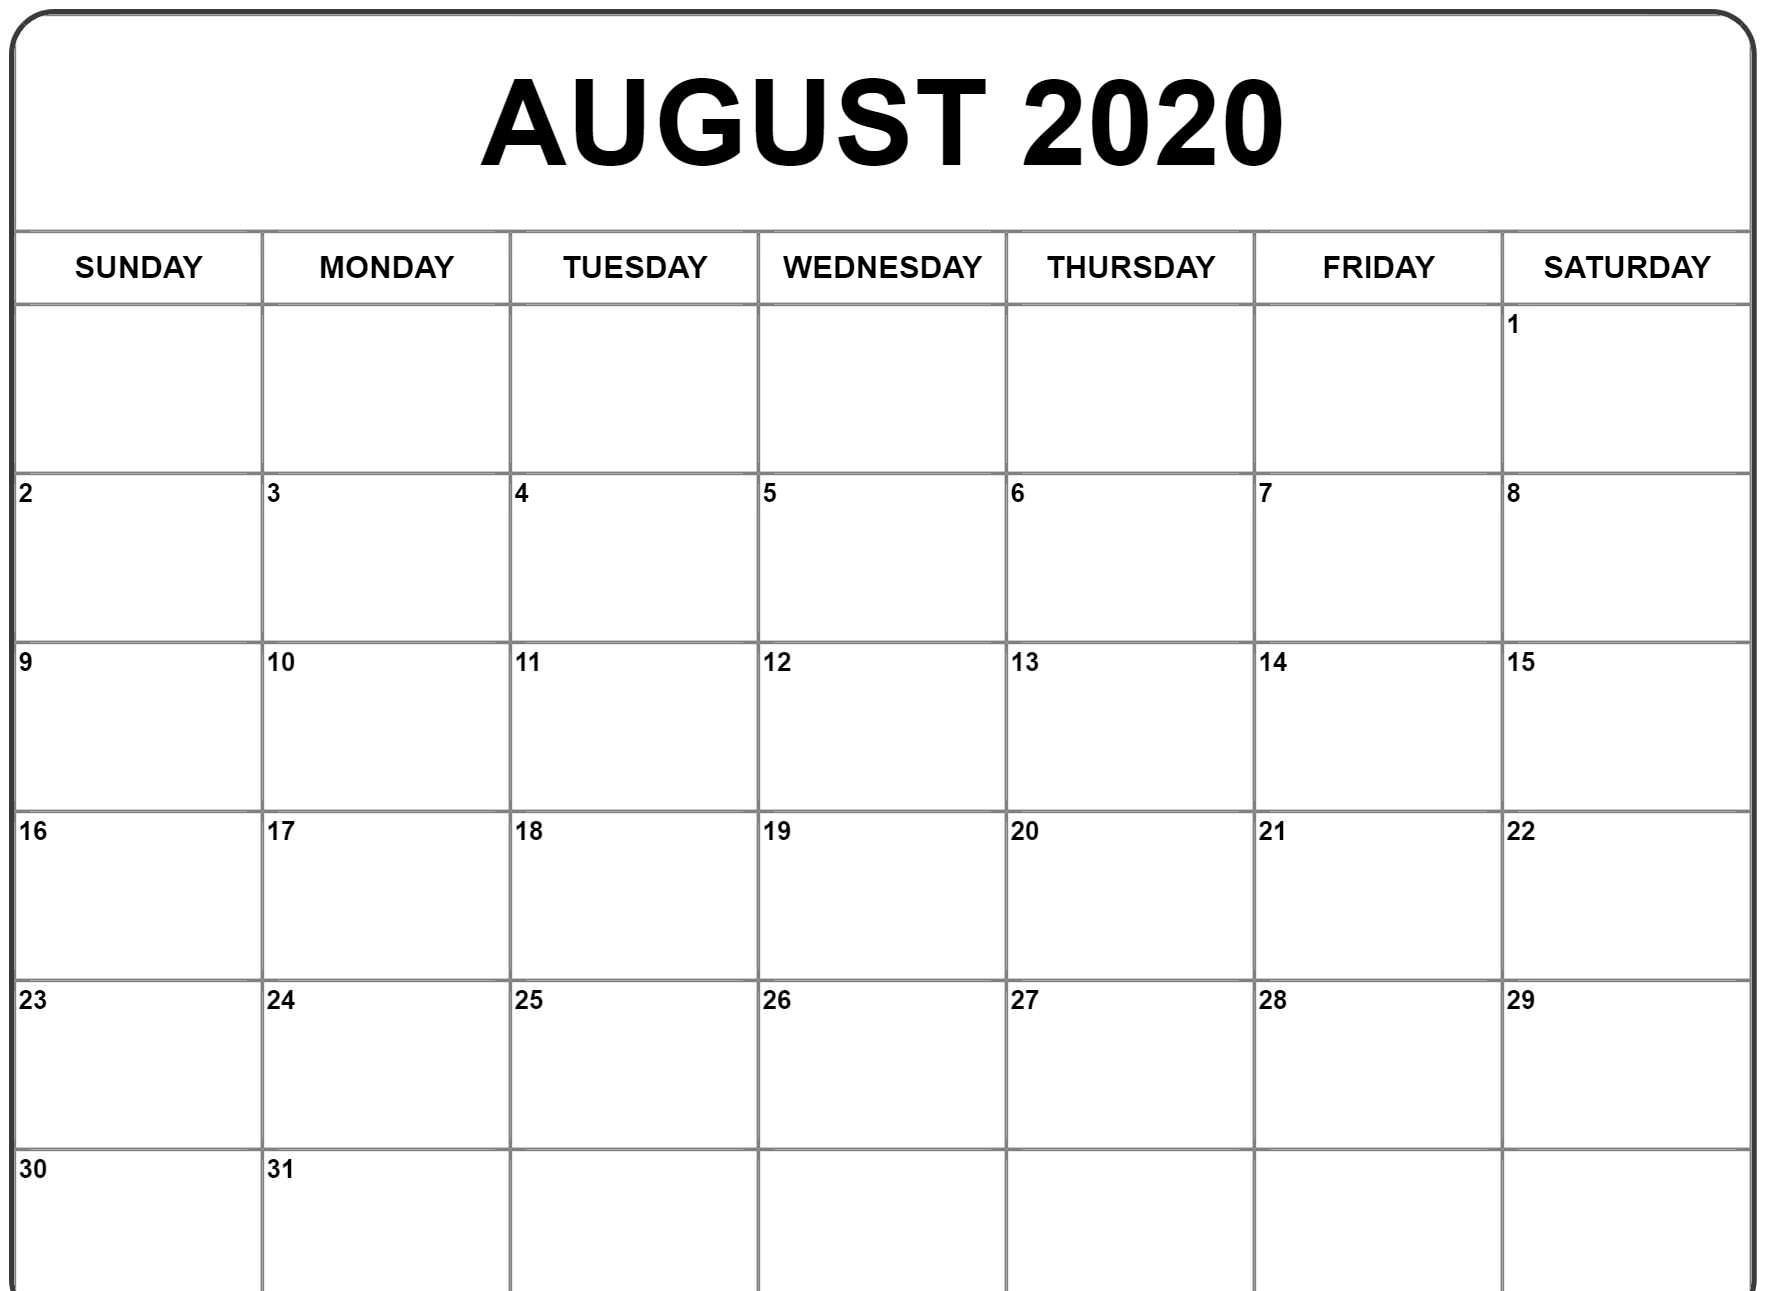 August 2020 Calendar Pdf, Word, Excel Printable Template  Calendar 2020 August To December Template